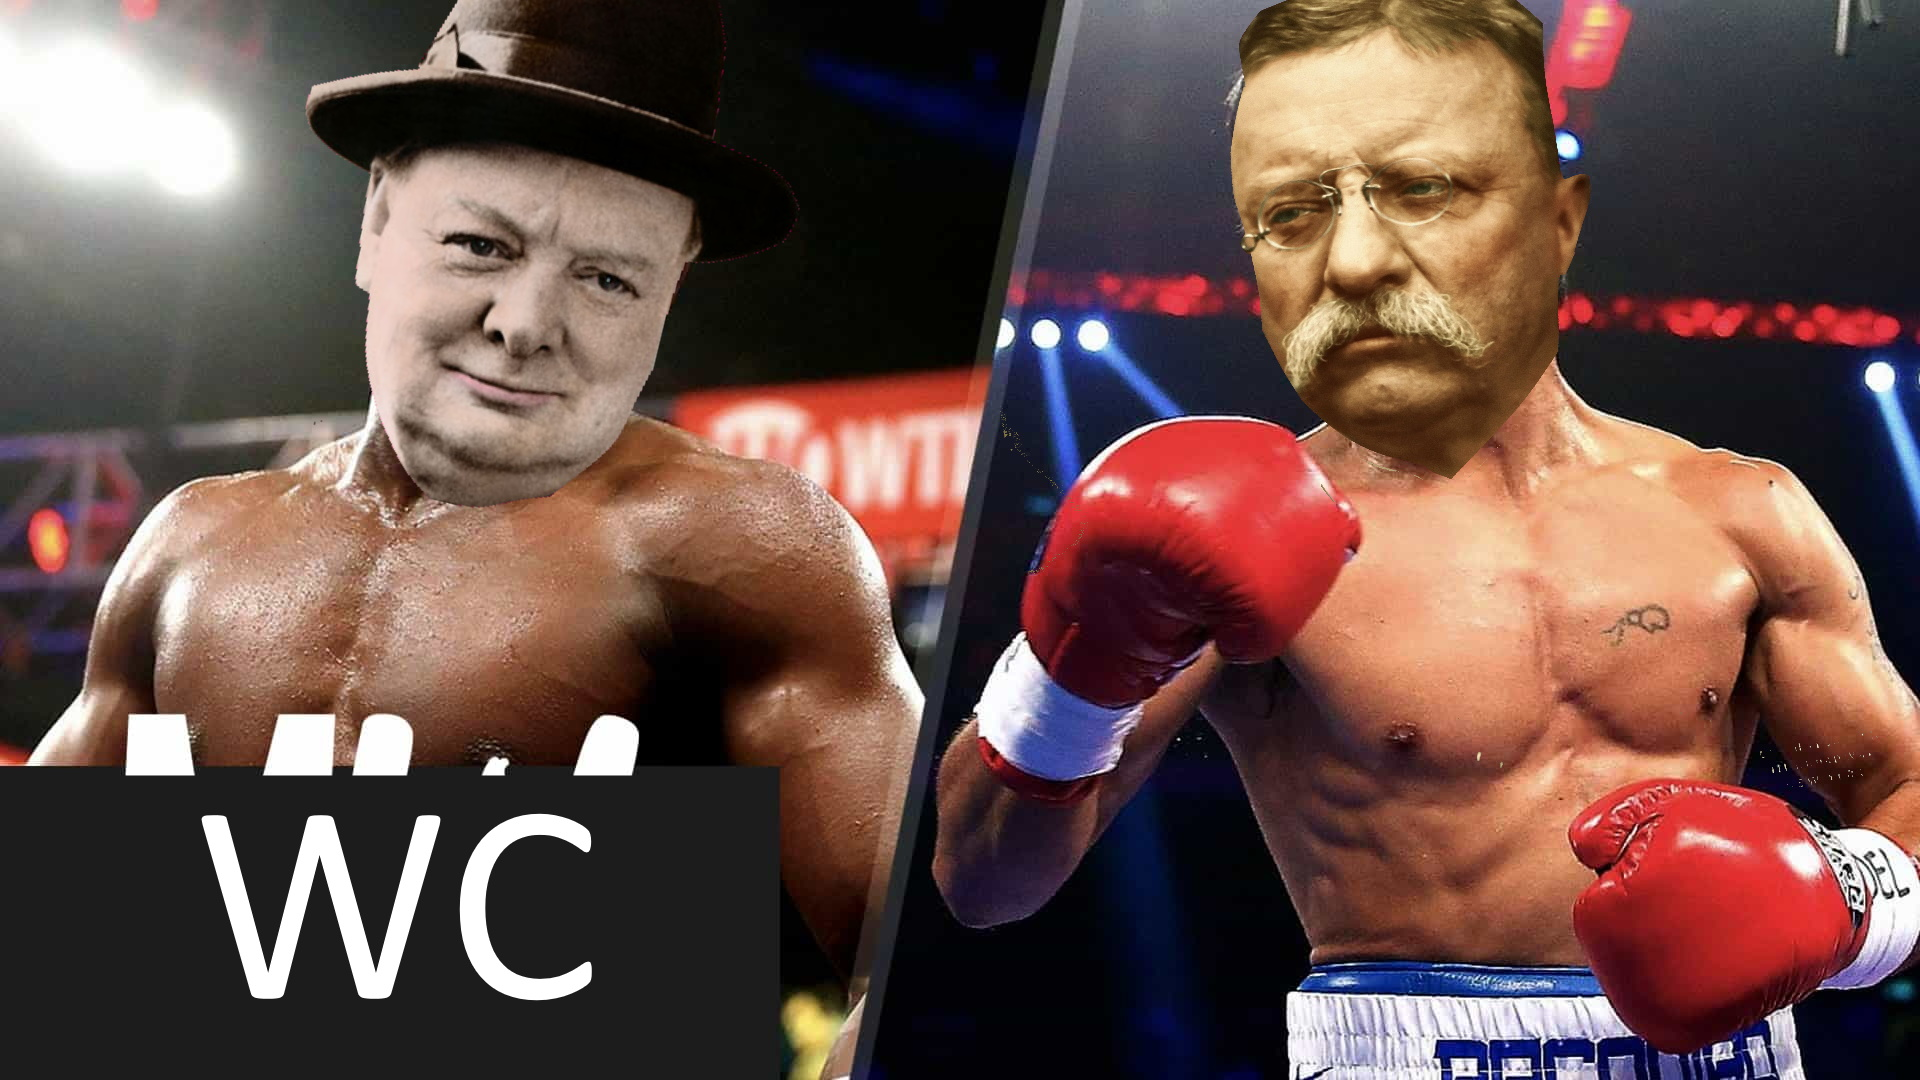 Why Teddy Roosevelt Would Beat Winston Churchill in a fight.